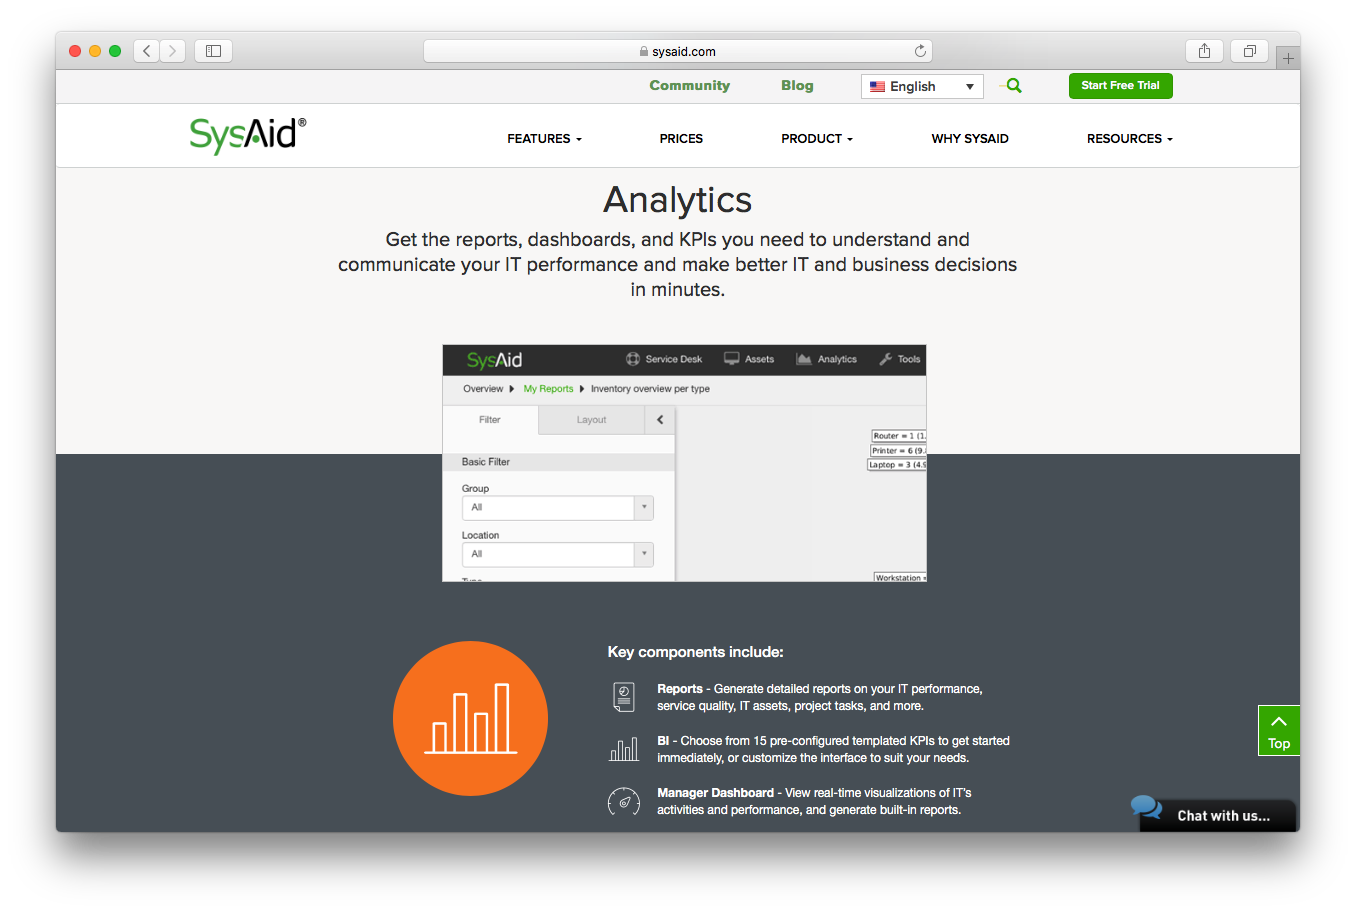 SysAid features screenshot analytics reports dashboards KPIs understand communicate it performance business decisions